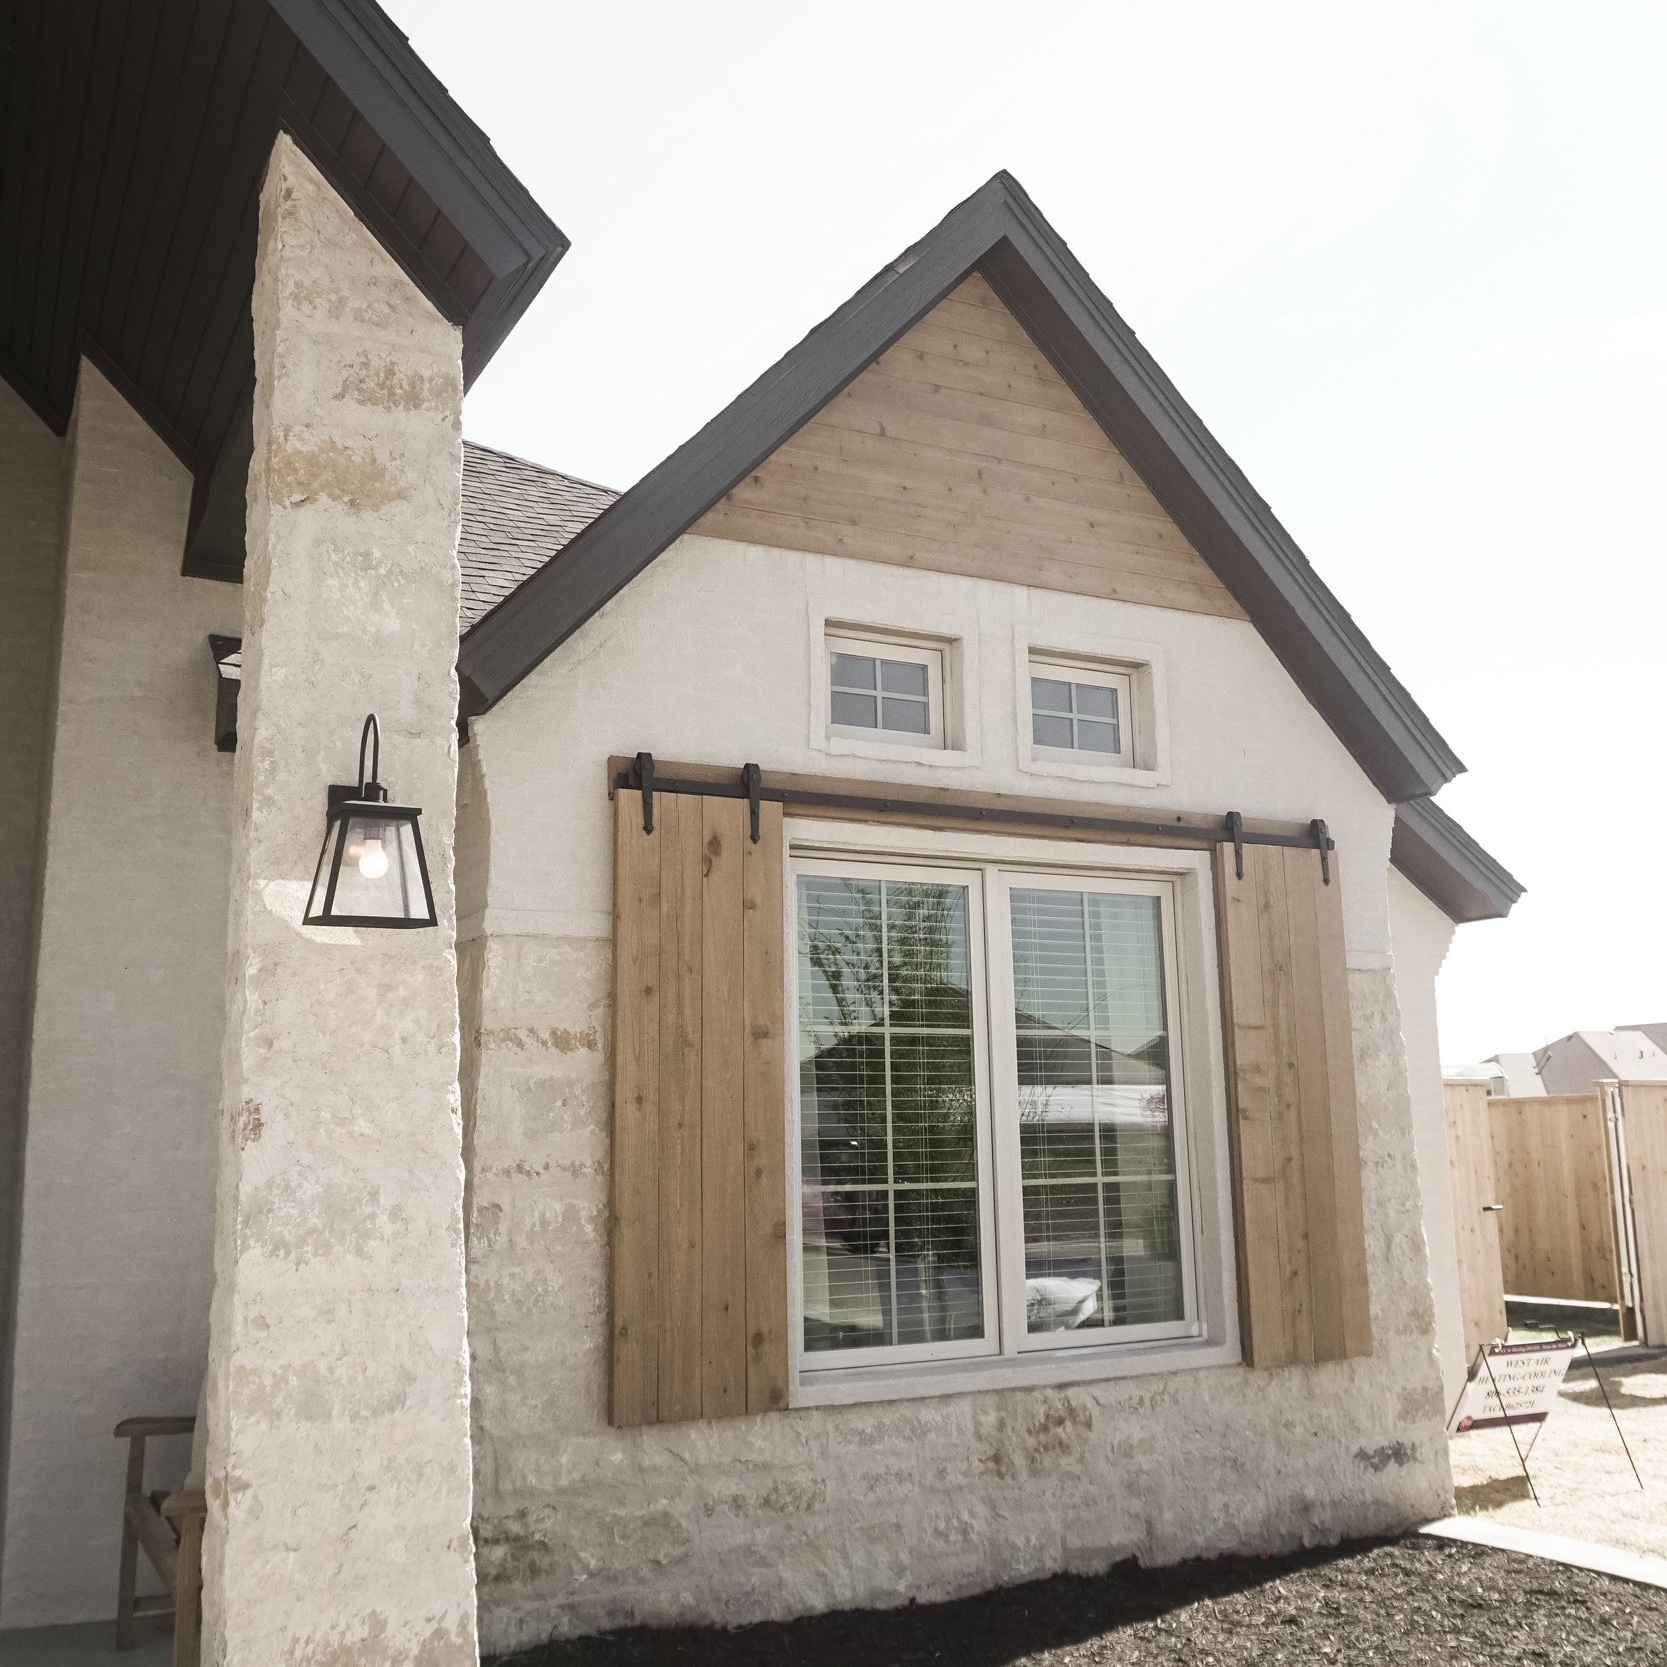 Homes by JFerg - Free consultation and $2000 off construction of new build.